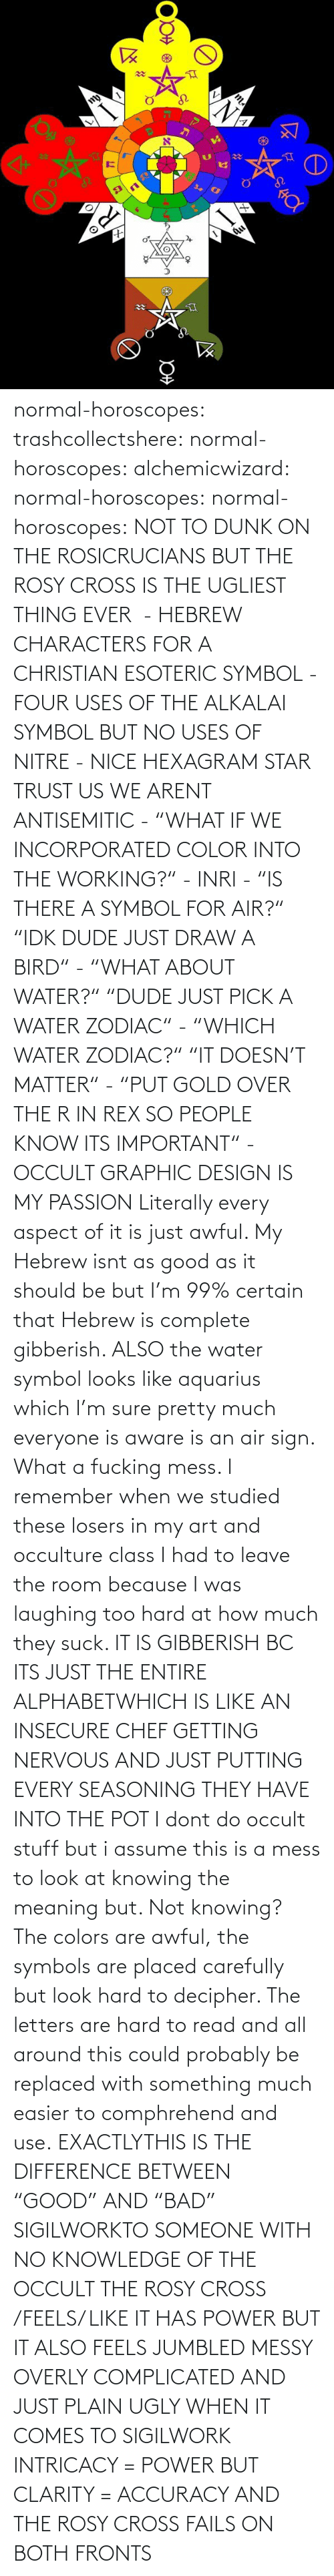 "probably: normal-horoscopes:  trashcollectshere: normal-horoscopes:   alchemicwizard:  normal-horoscopes:  normal-horoscopes: NOT TO DUNK ON THE ROSICRUCIANS BUT THE ROSY CROSS IS THE UGLIEST THING EVER  - HEBREW CHARACTERS FOR A CHRISTIAN ESOTERIC SYMBOL - FOUR USES OF THE ALKALAI SYMBOL BUT NO USES OF NITRE - NICE HEXAGRAM STAR TRUST US WE ARENT ANTISEMITIC - ""WHAT IF WE INCORPORATED COLOR INTO THE WORKING?"" - INRI - ""IS THERE A SYMBOL FOR AIR?"" ""IDK DUDE JUST DRAW A BIRD"" - ""WHAT ABOUT WATER?"" ""DUDE JUST PICK A WATER ZODIAC"" - ""WHICH WATER ZODIAC?"" ""IT DOESN'T MATTER"" - ""PUT GOLD OVER THE R IN REX SO PEOPLE KNOW ITS IMPORTANT"" - OCCULT GRAPHIC DESIGN IS MY PASSION  Literally every aspect of it is just awful. My Hebrew isnt as good as it should be but I'm 99% certain that Hebrew is complete gibberish.  ALSO the water symbol looks like aquarius which I'm sure pretty much everyone is aware is an air sign. What a fucking mess.  I remember when we studied these losers in my art and occulture class I had to leave the room because I was laughing too hard at how much they suck.   IT IS GIBBERISH BC ITS JUST THE ENTIRE ALPHABETWHICH IS LIKE AN INSECURE CHEF GETTING NERVOUS AND JUST PUTTING EVERY SEASONING THEY HAVE INTO THE POT     I dont do occult stuff but i assume this is a mess to look at knowing the meaning but. Not knowing? The colors are awful, the symbols are placed carefully but look hard to decipher. The letters are hard to read and all around this could probably be replaced with something much easier to comphrehend and use.  EXACTLYTHIS IS THE DIFFERENCE BETWEEN ""GOOD"" AND ""BAD"" SIGILWORKTO SOMEONE WITH NO KNOWLEDGE OF THE OCCULT THE ROSY CROSS /FEELS/ LIKE IT HAS POWER BUT IT ALSO FEELS JUMBLED MESSY OVERLY COMPLICATED AND JUST PLAIN UGLY WHEN IT COMES TO SIGILWORK INTRICACY = POWER BUT CLARITY = ACCURACY AND THE ROSY CROSS FAILS ON BOTH FRONTS"